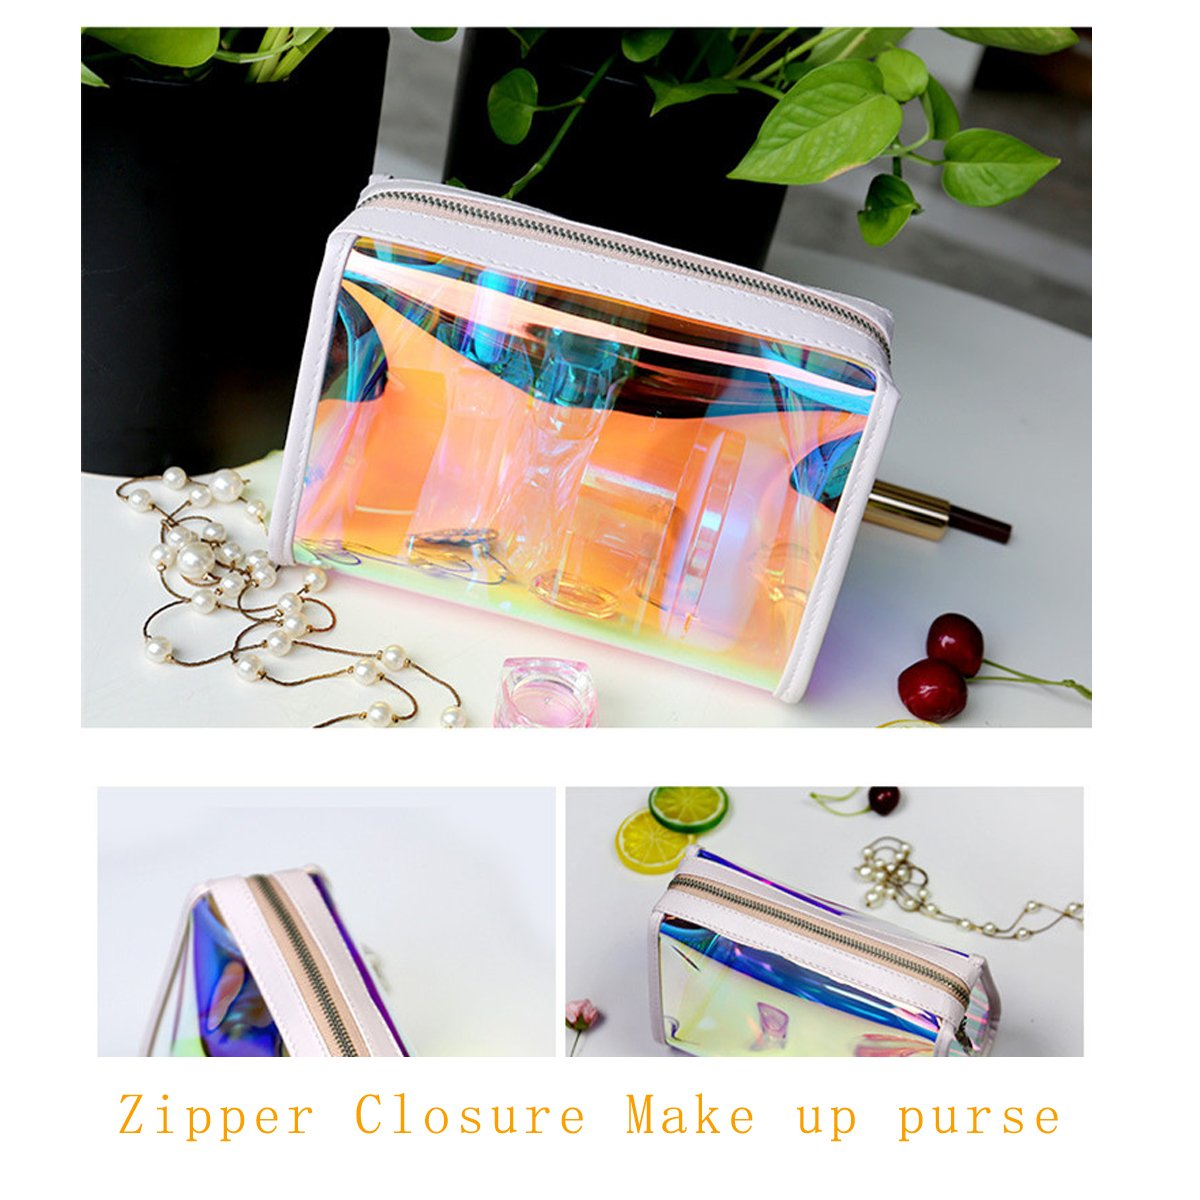 Andear Women's PVC Clear Hologram Transparent Clutch MakeUp Purse Bag for Girls by Andear (Image #5)